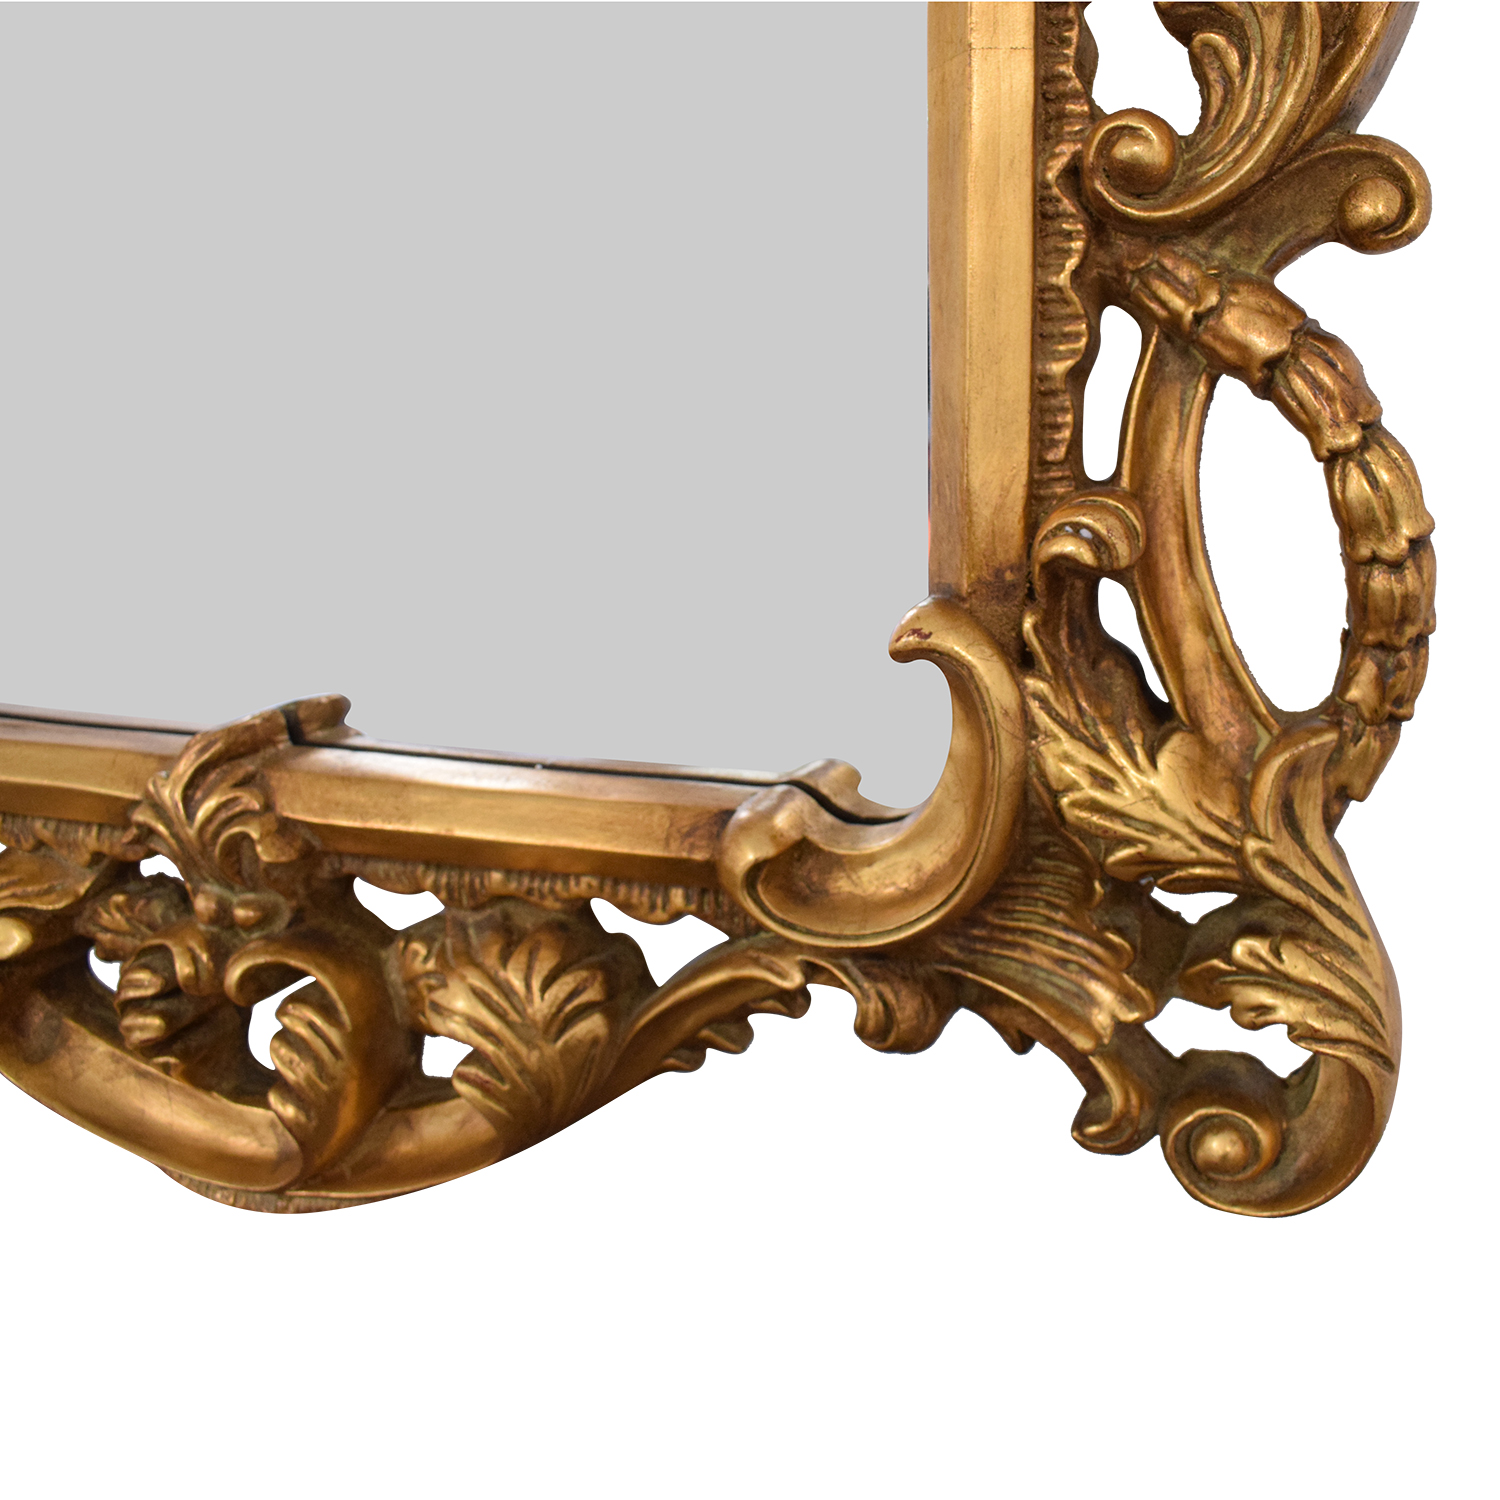 Horchow Horchow Sterling Industries Ornate Wall Mirror gold